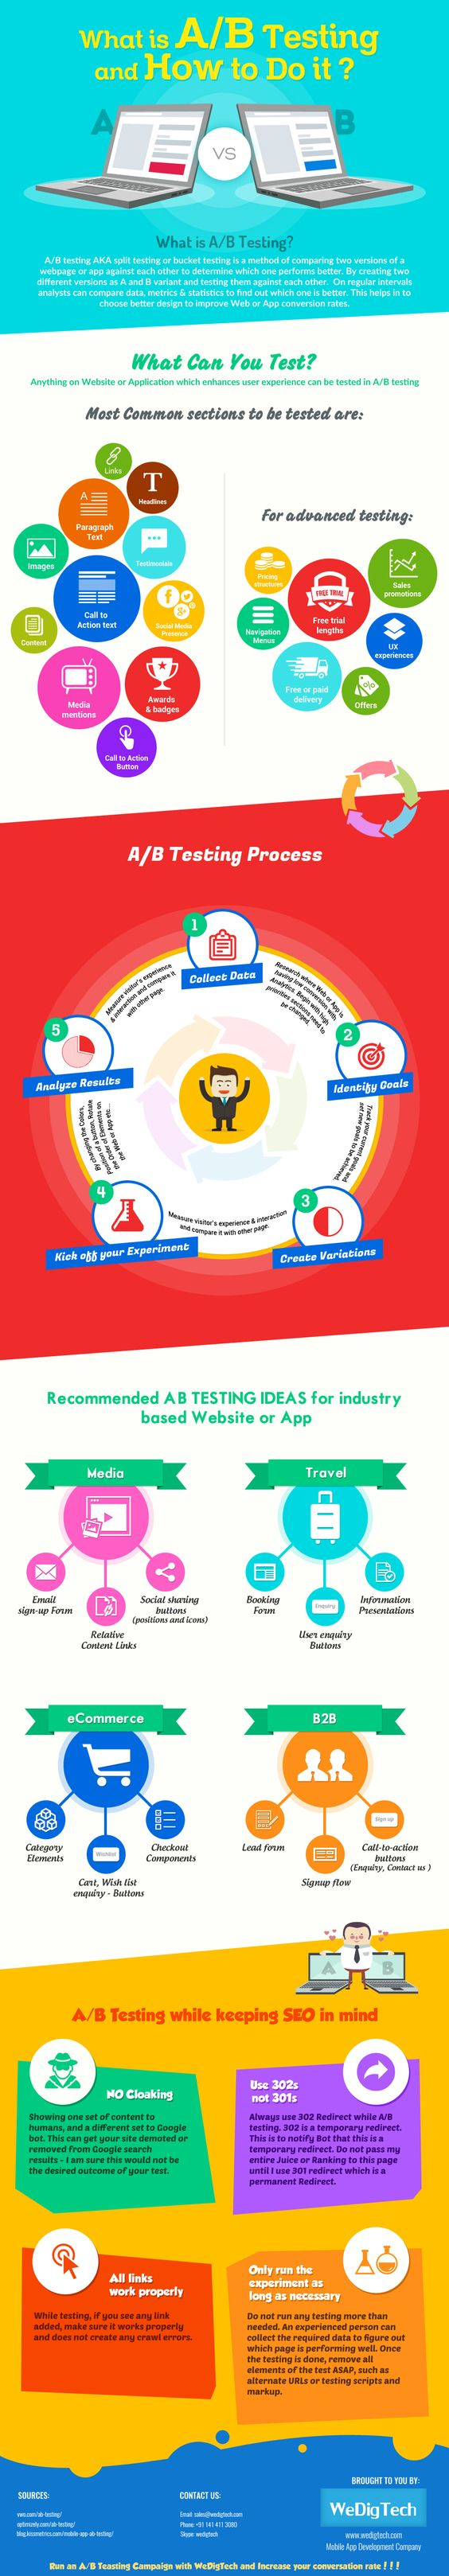 What is A/B Testing and how to do it?